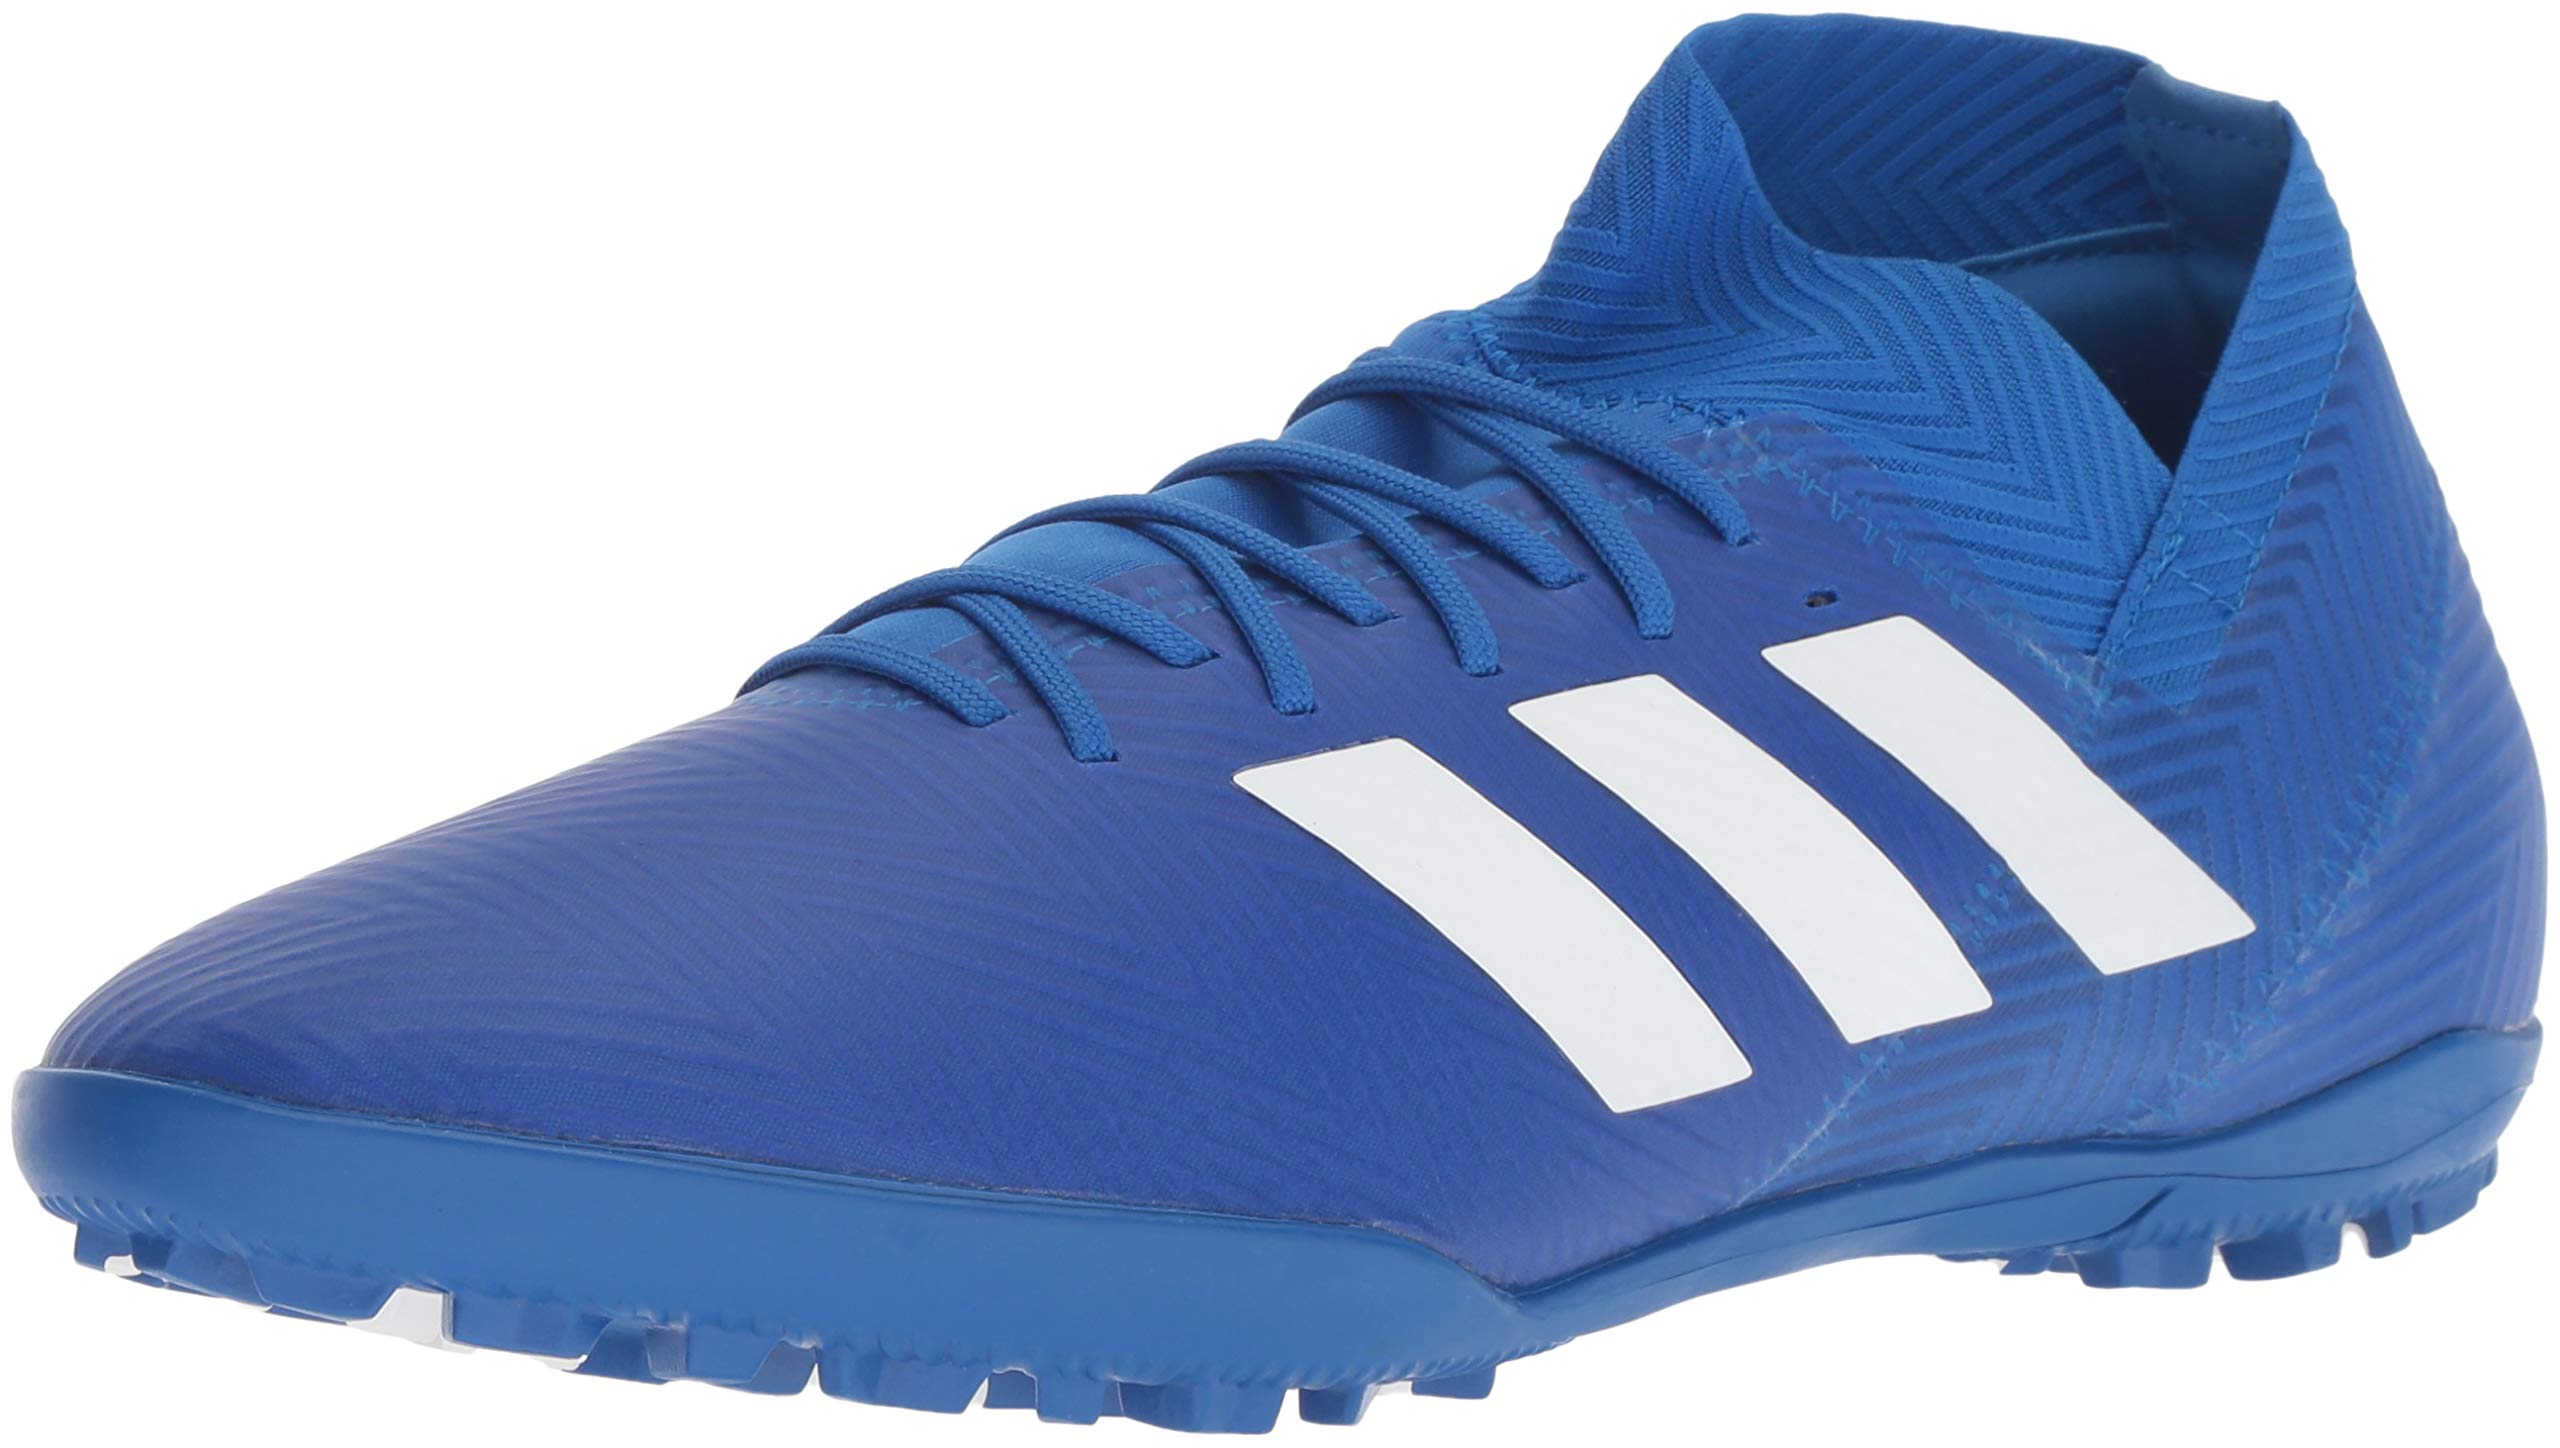 adidas Men's Nemeziz Tango 18.3 Turf Soccer Shoe, Football Blue/White/Football Blue, 10 M US